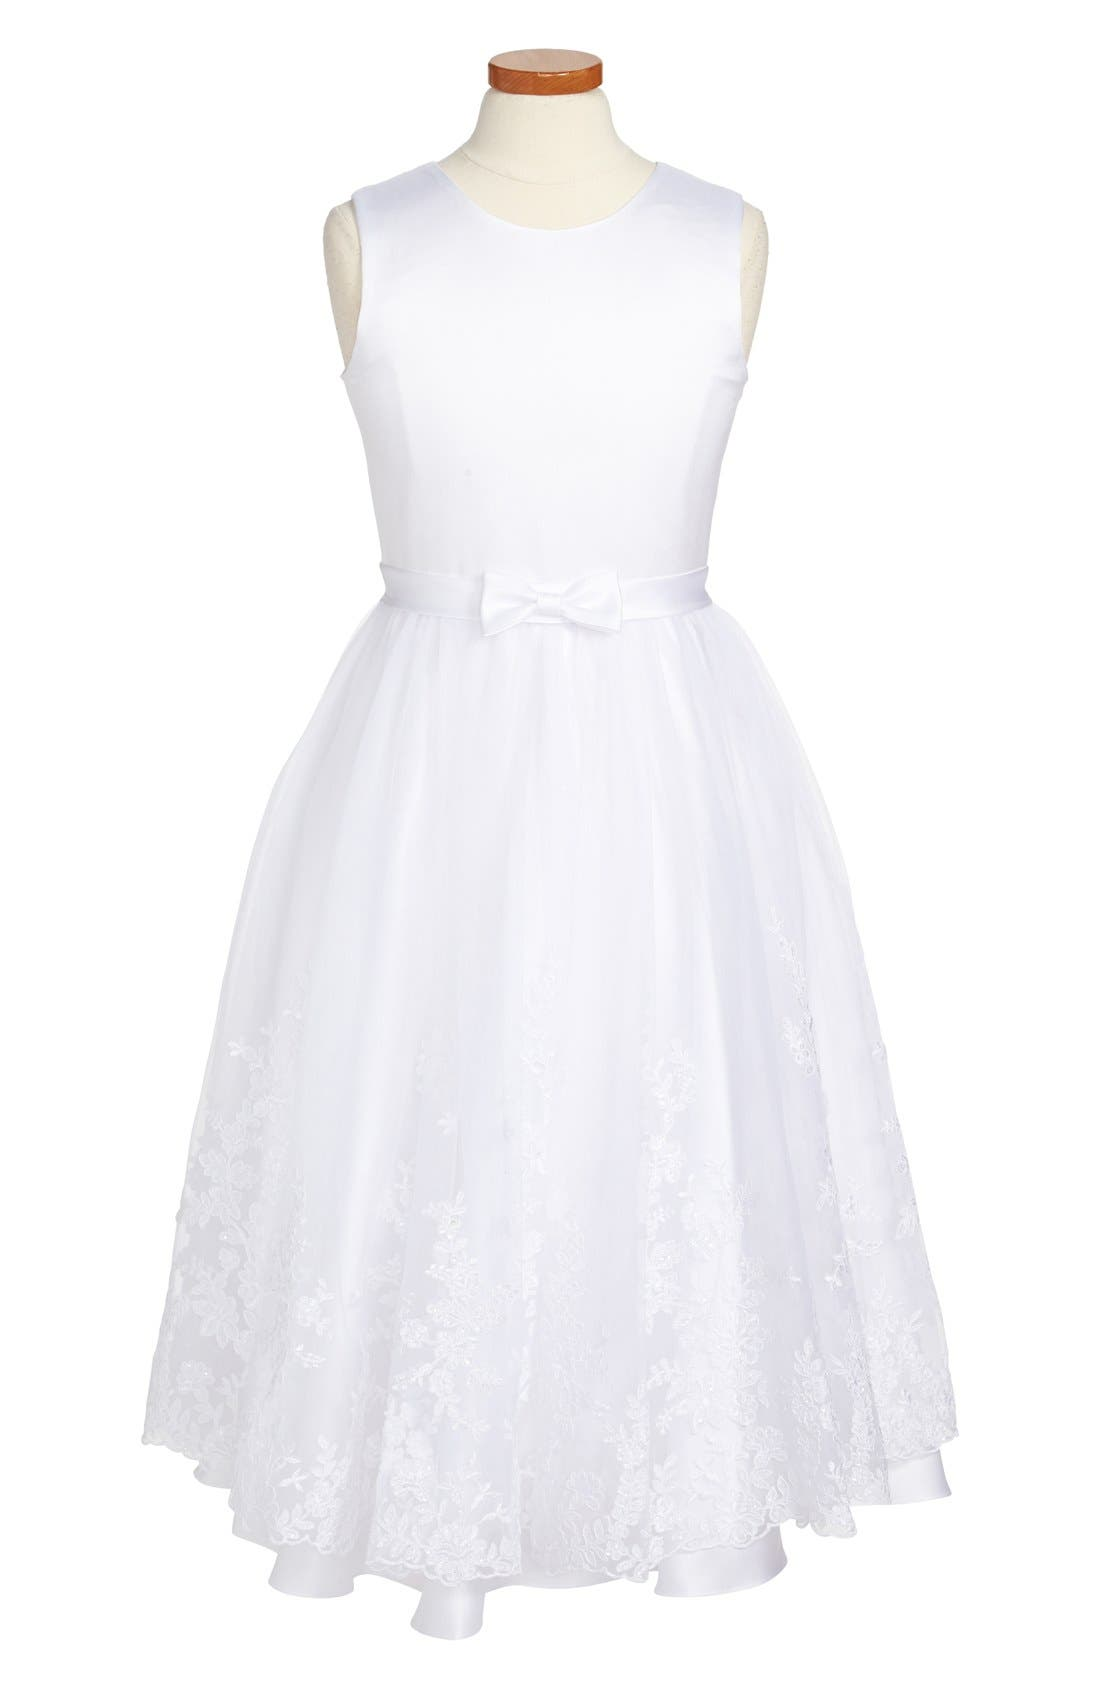 Alternate Image 1 Selected - Joan Calabrese for Mon Cheri First Communion Dress (Big Girls)